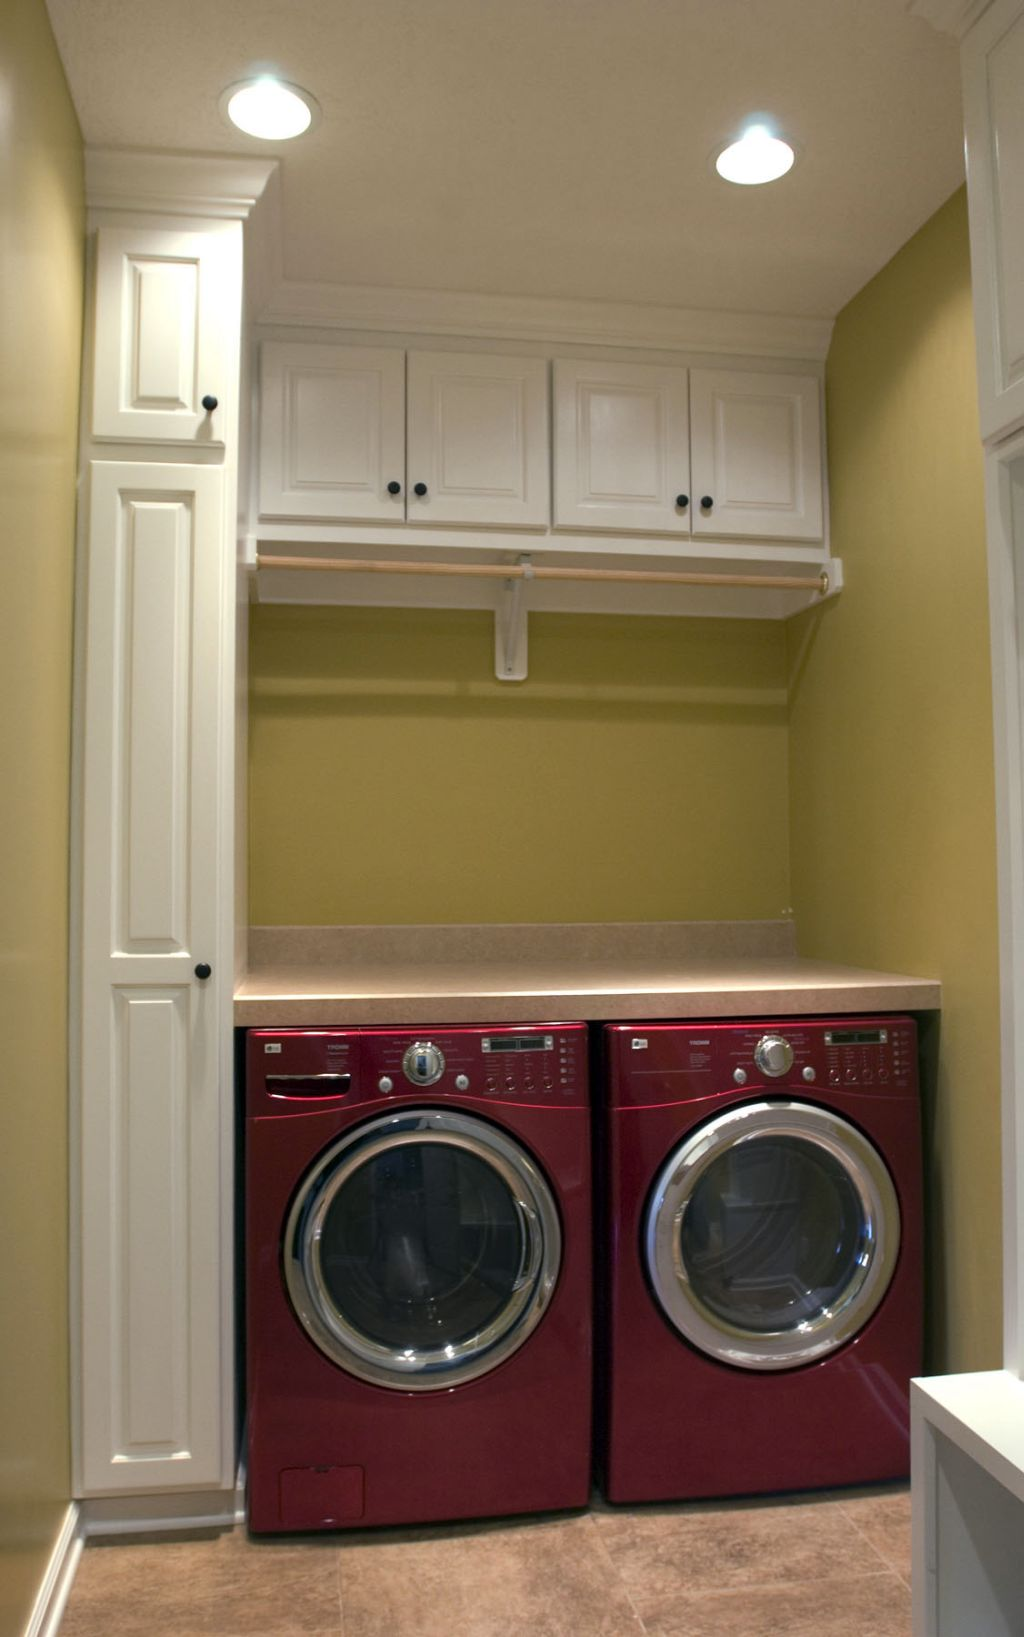 20 Briliant Small Laundry Room Storage Solutions on Laundry Cabinets Ideas  id=50596